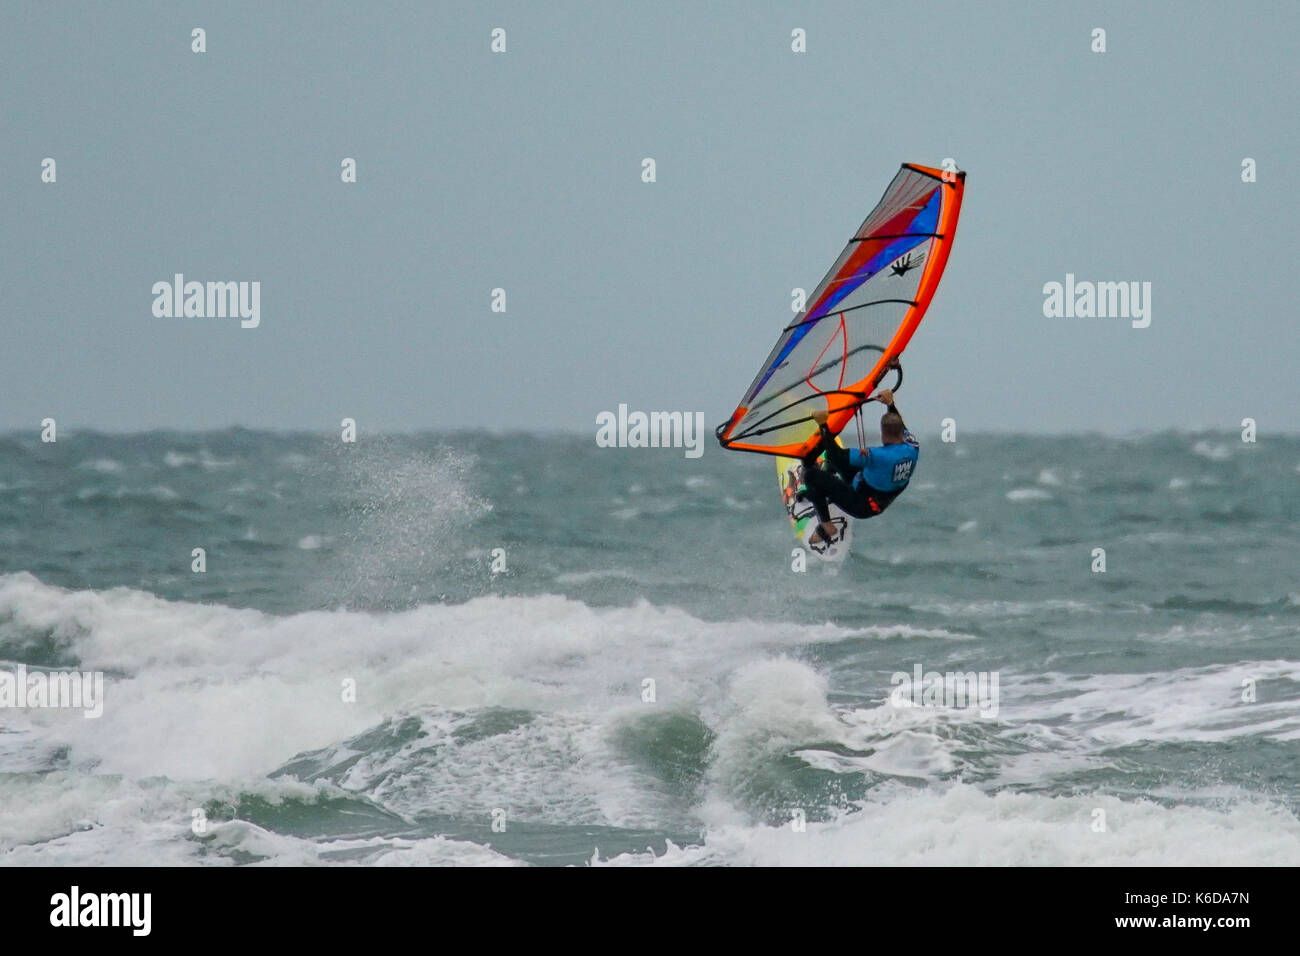 West Strand, West Wittering. 12th September 2017. UK Weather. Low pressure conditions brought high winds to the south coast today as Storm Aileen approached the UK. Windsurfers enjoying the conditions at West Wittering beach in West Sussex. Credit: james jagger/Alamy Live News - Stock Image